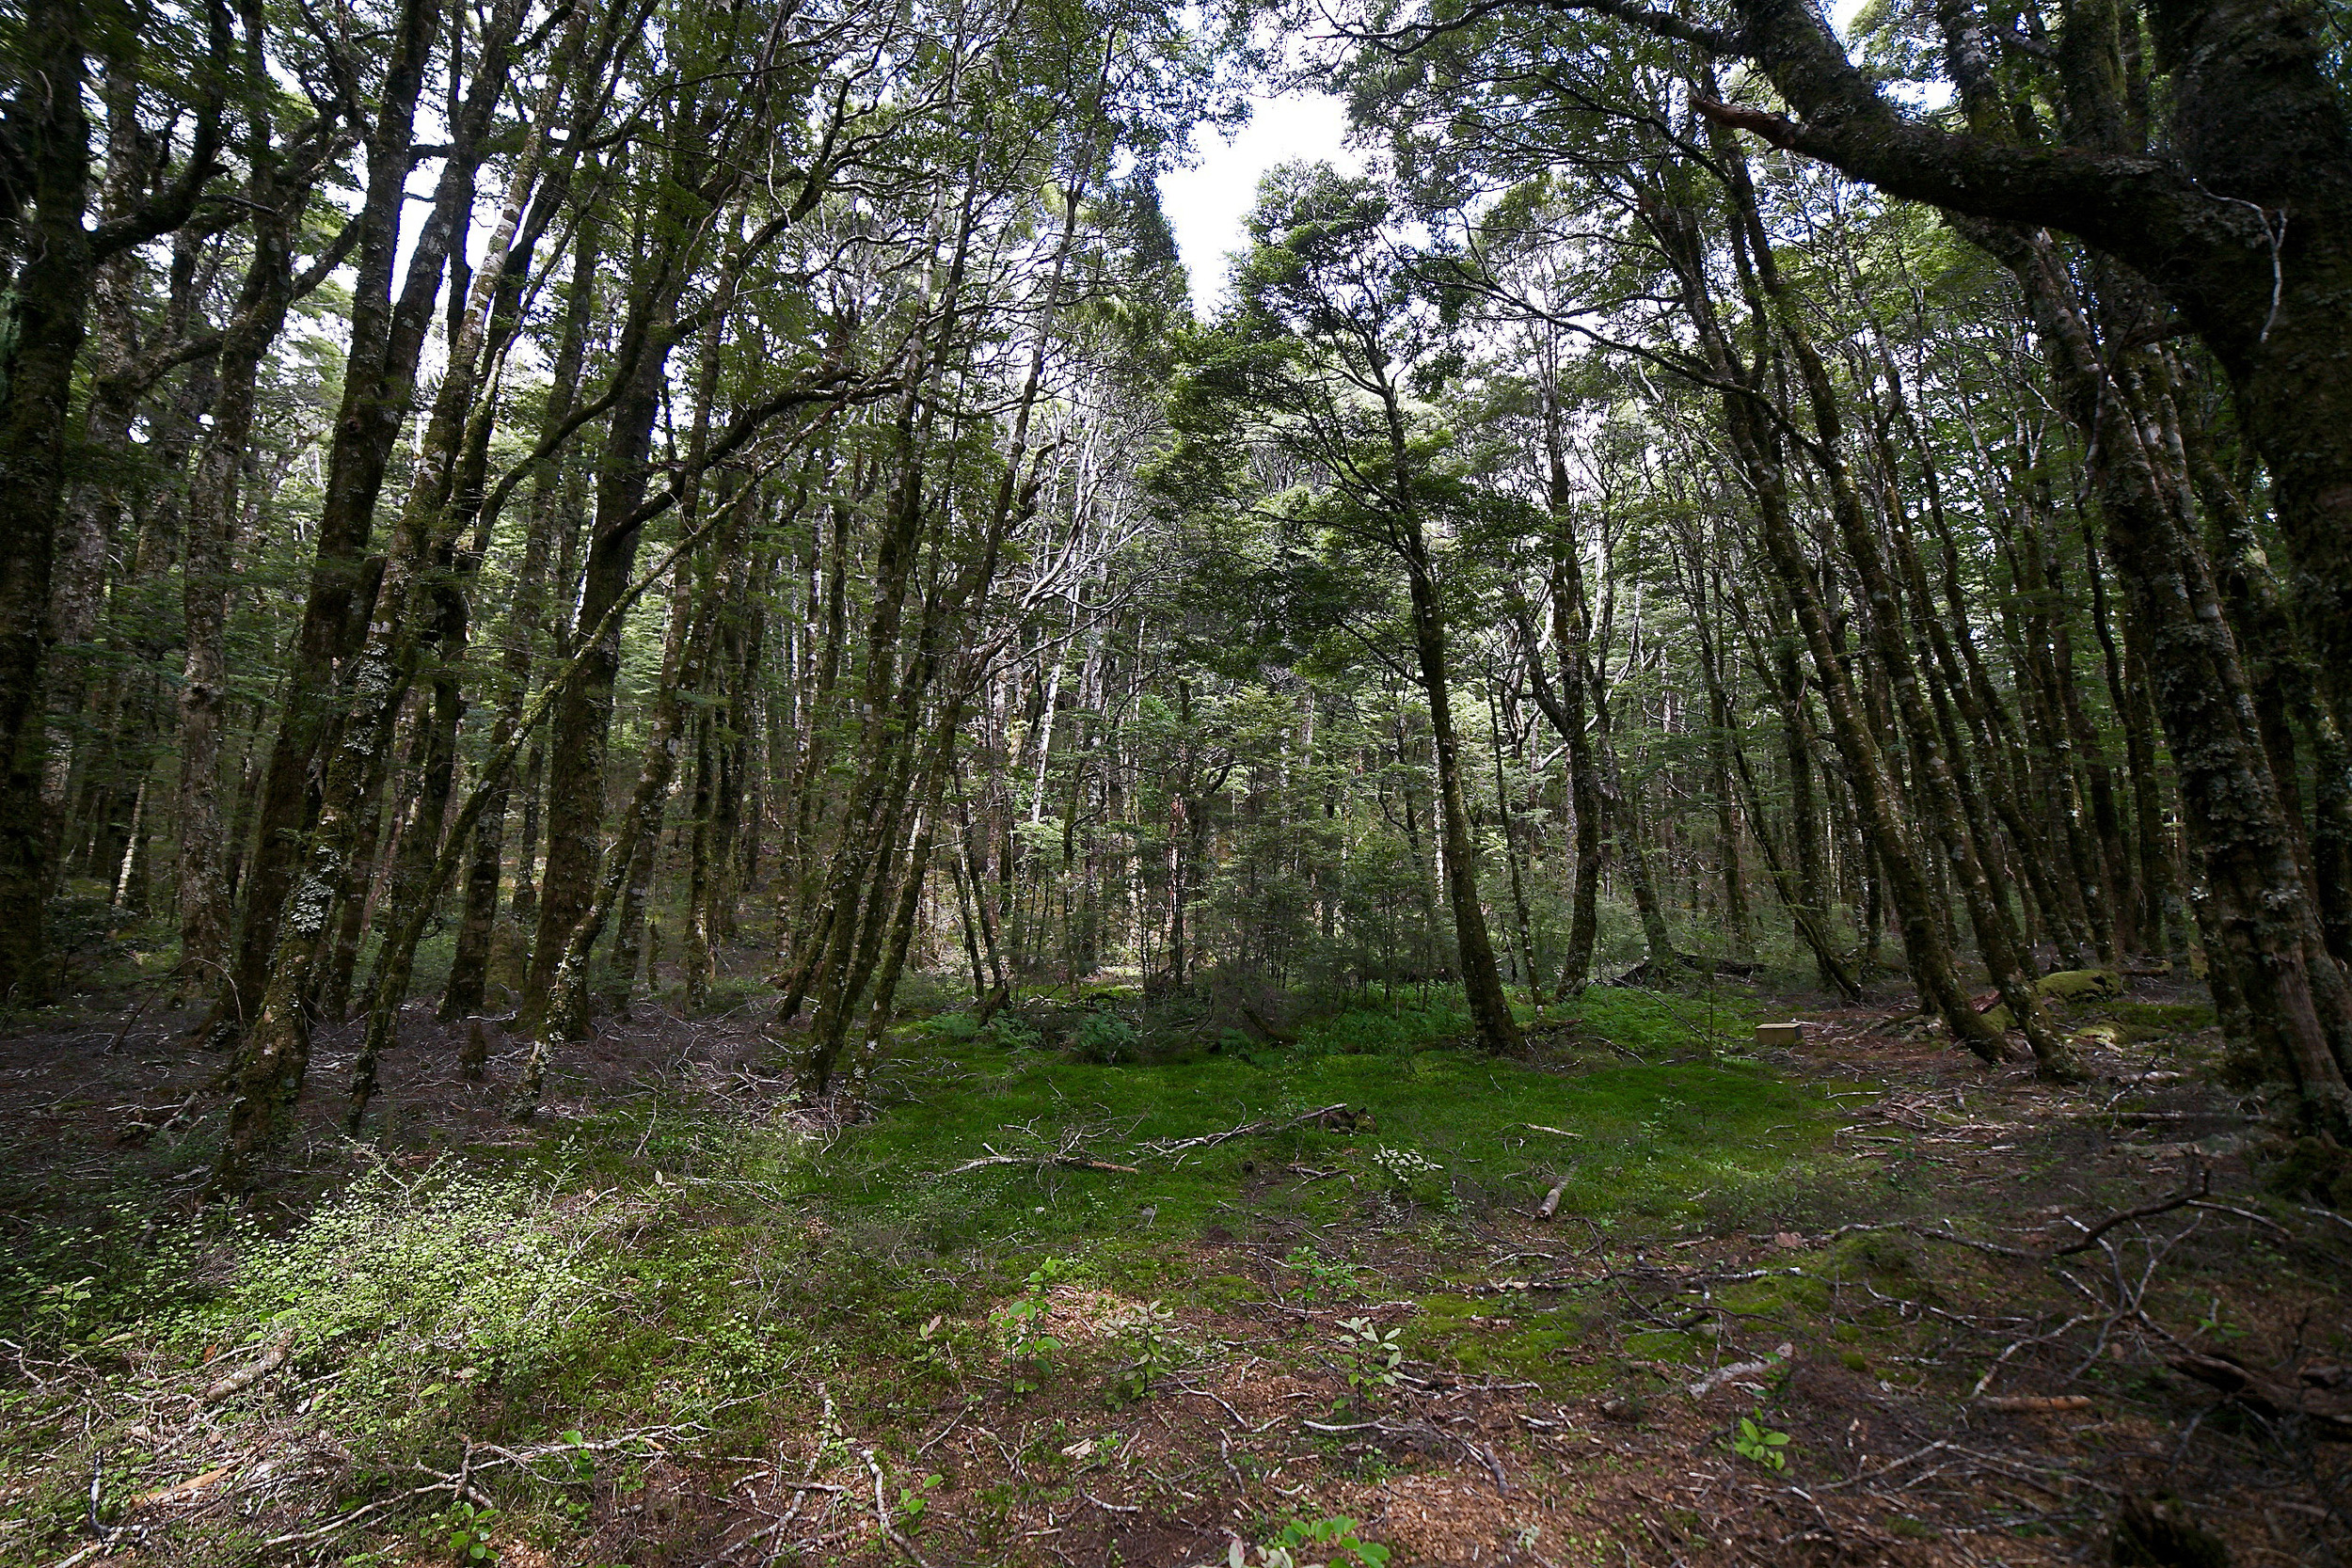 An elven forest clearing in New Zealand - Harwood forest, Canaan Downs.